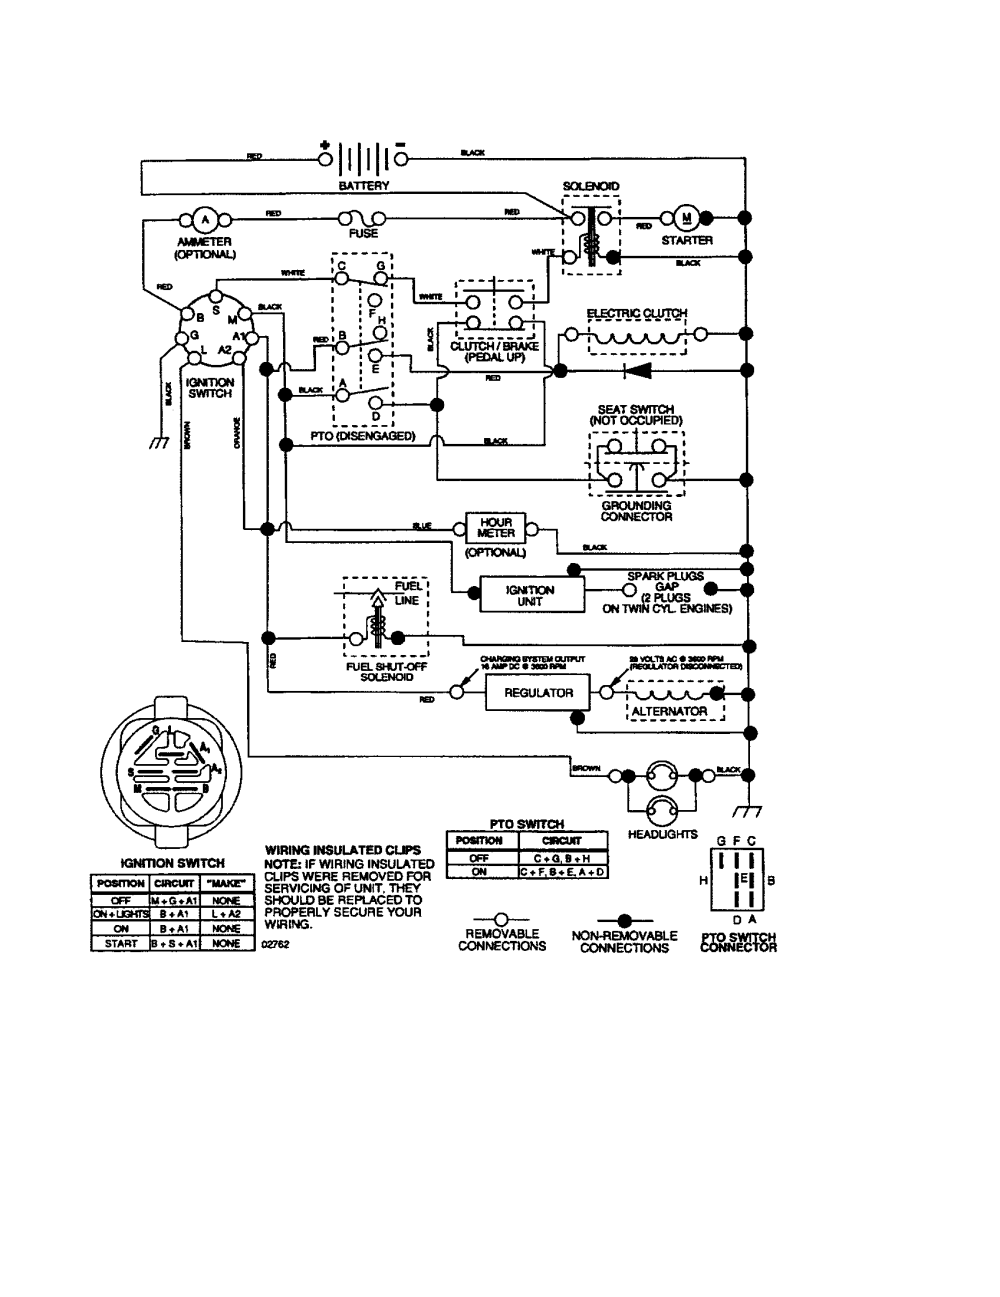 medium resolution of related with craftsman 15 hp kohler wiring diagram free download